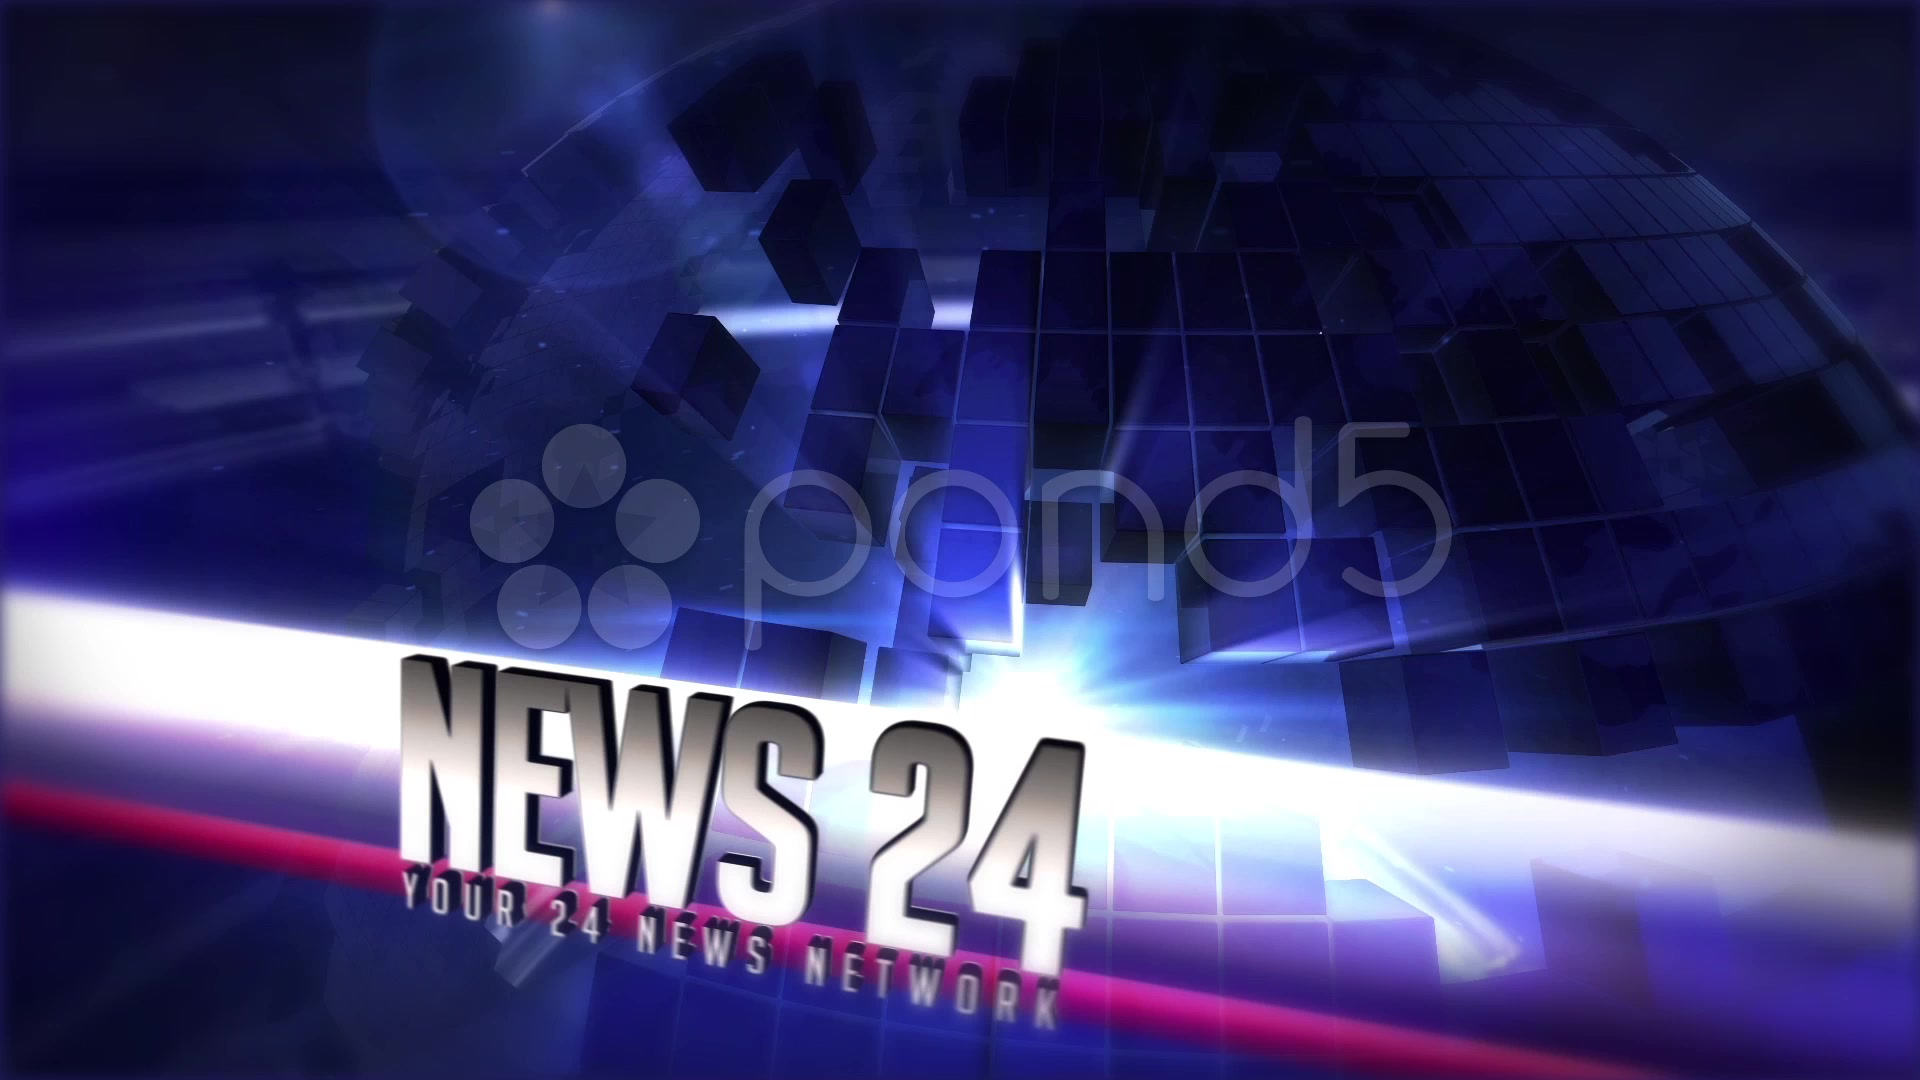 After Effects Project - Pond5 Broadcast News 24 complete package 37503569